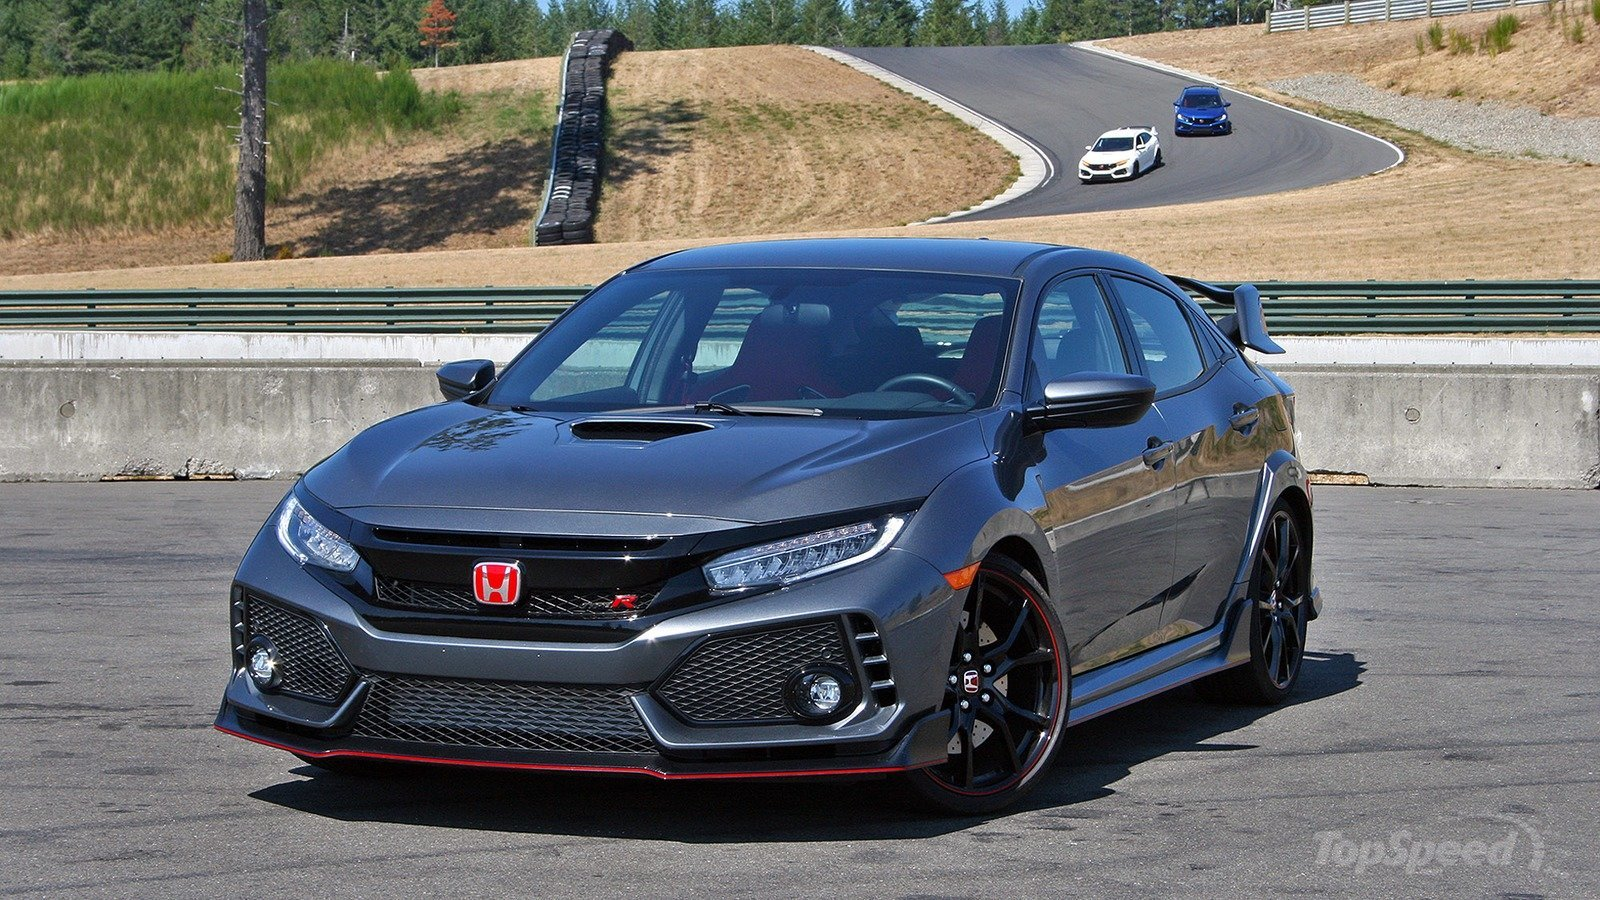 2017 honda civic type r driven review top speed. Black Bedroom Furniture Sets. Home Design Ideas